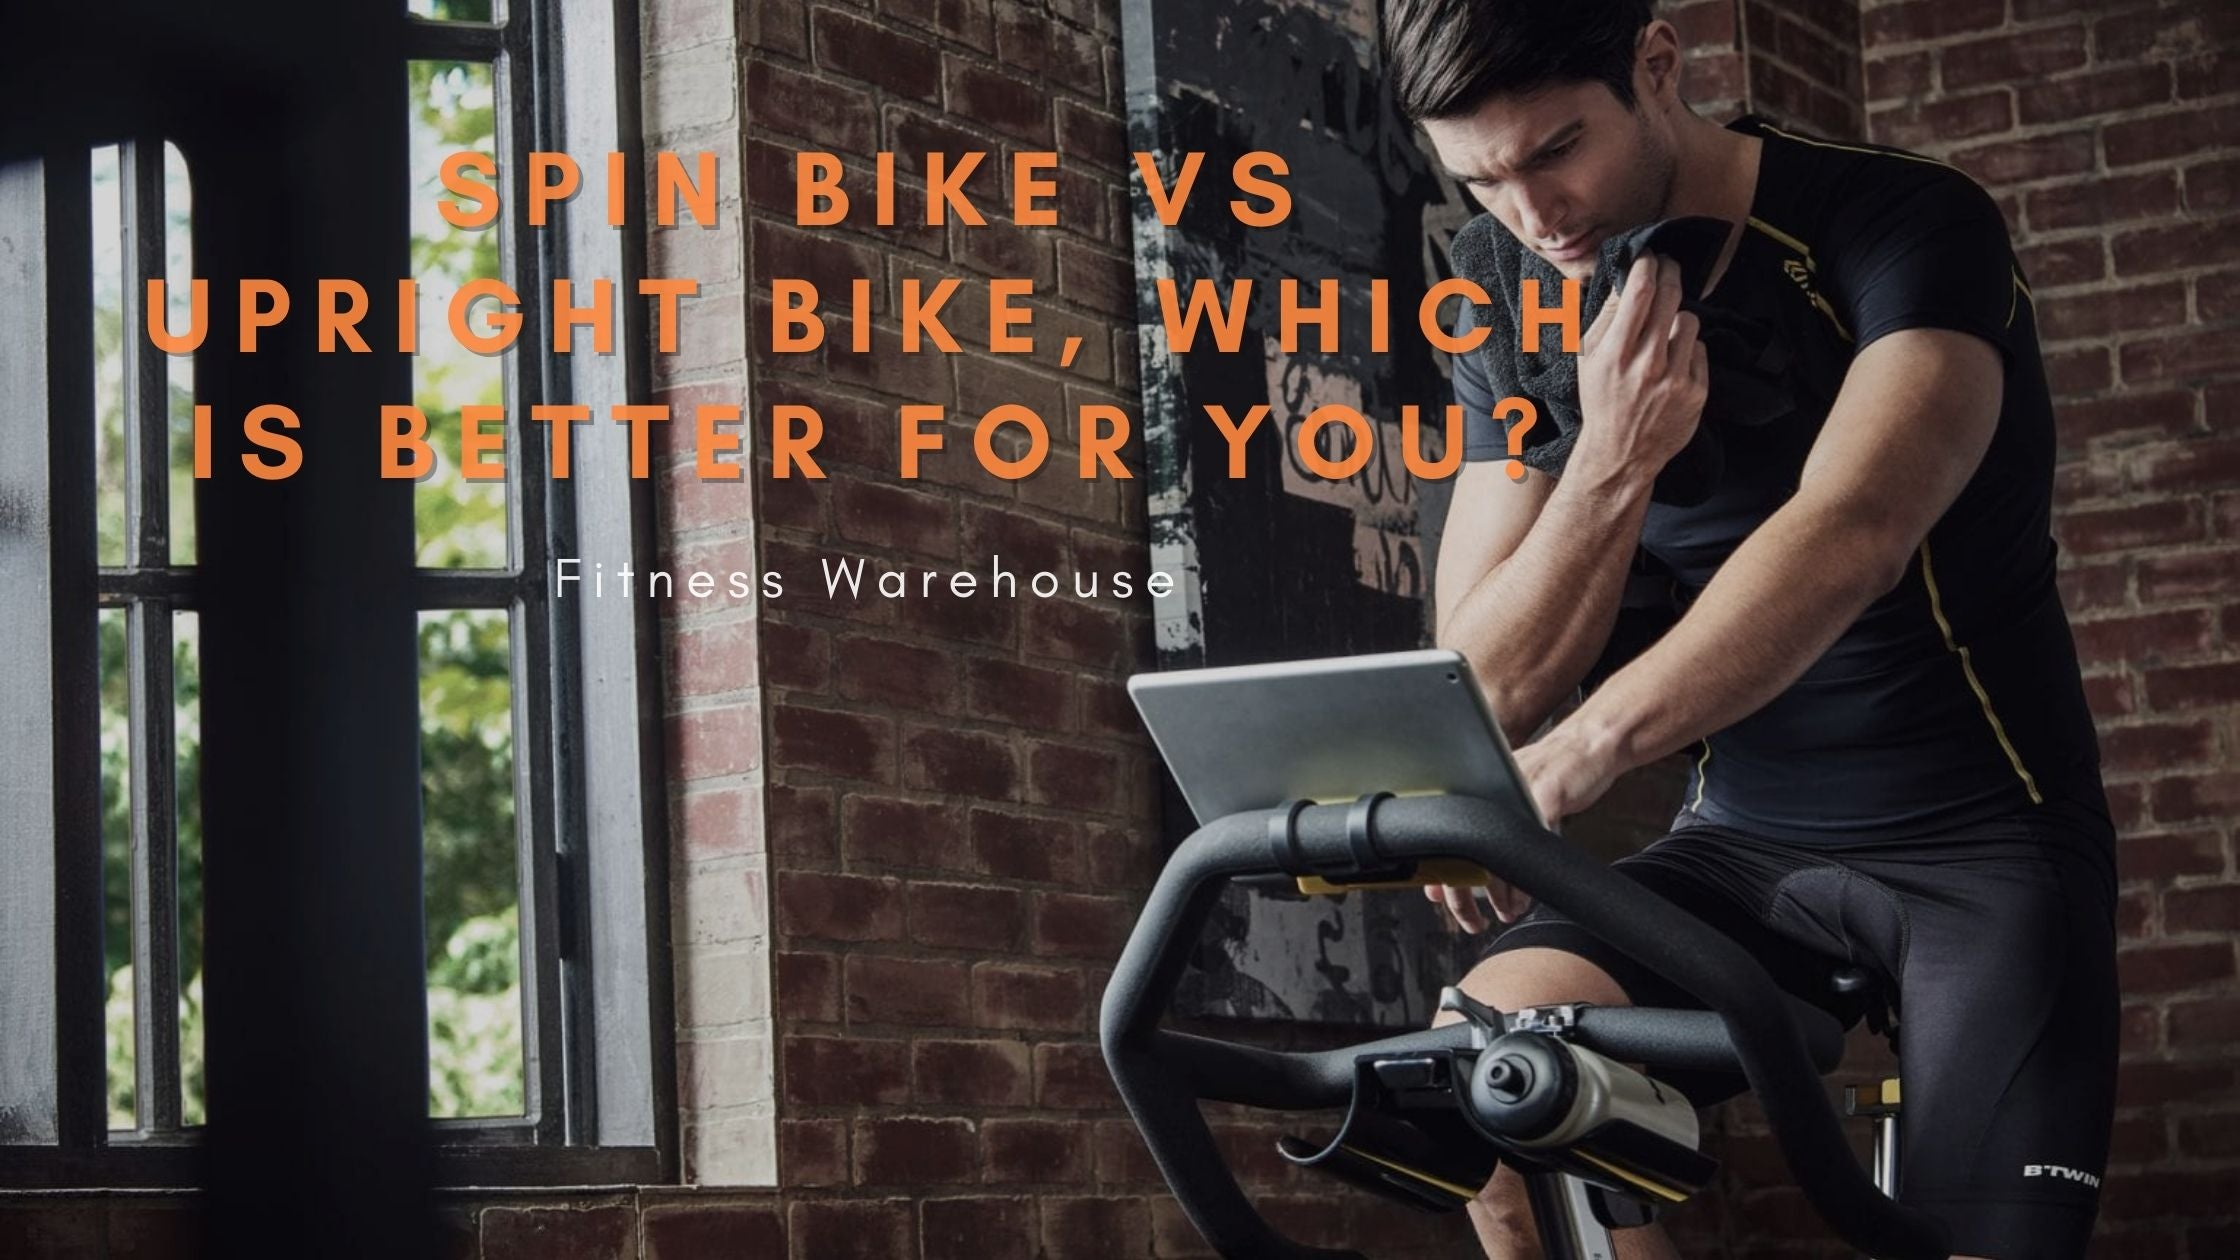 Upright Bikes Vs Spin Bikes - Which is better for you?